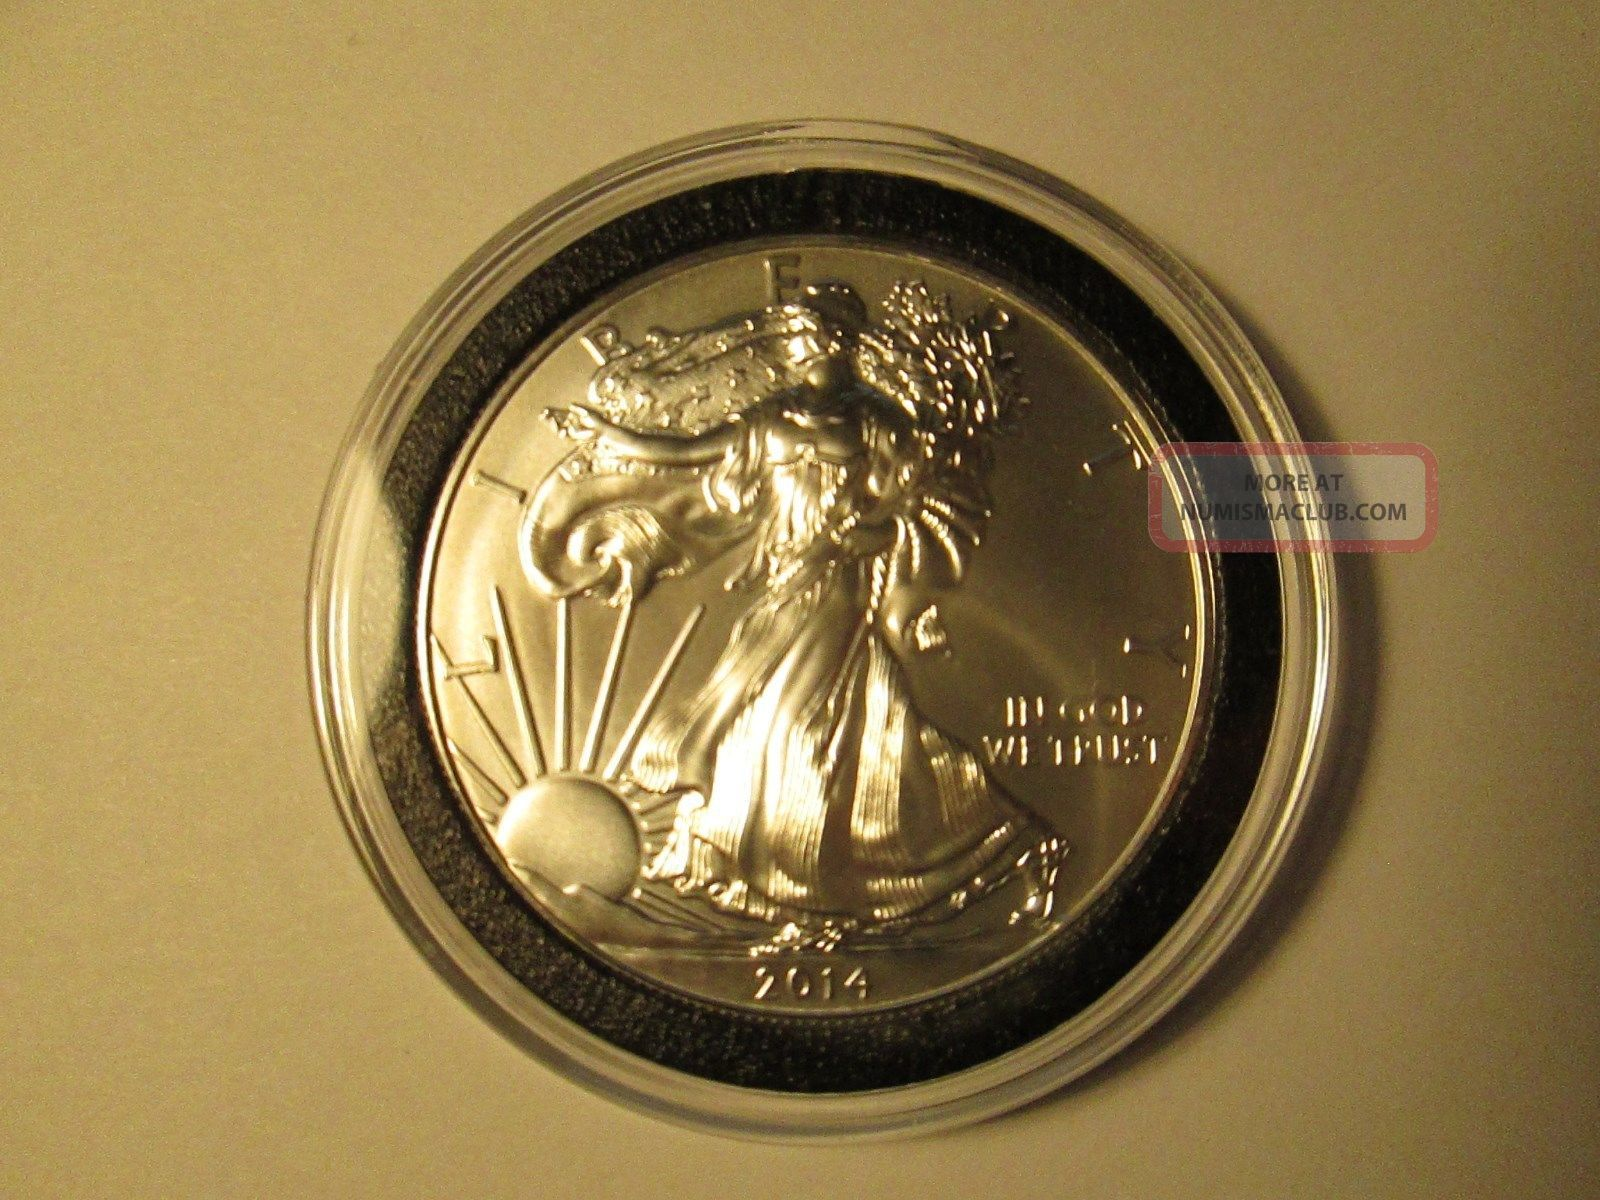 2014 Silver American Eagle Uncirculated 1 Oz 999 Fine